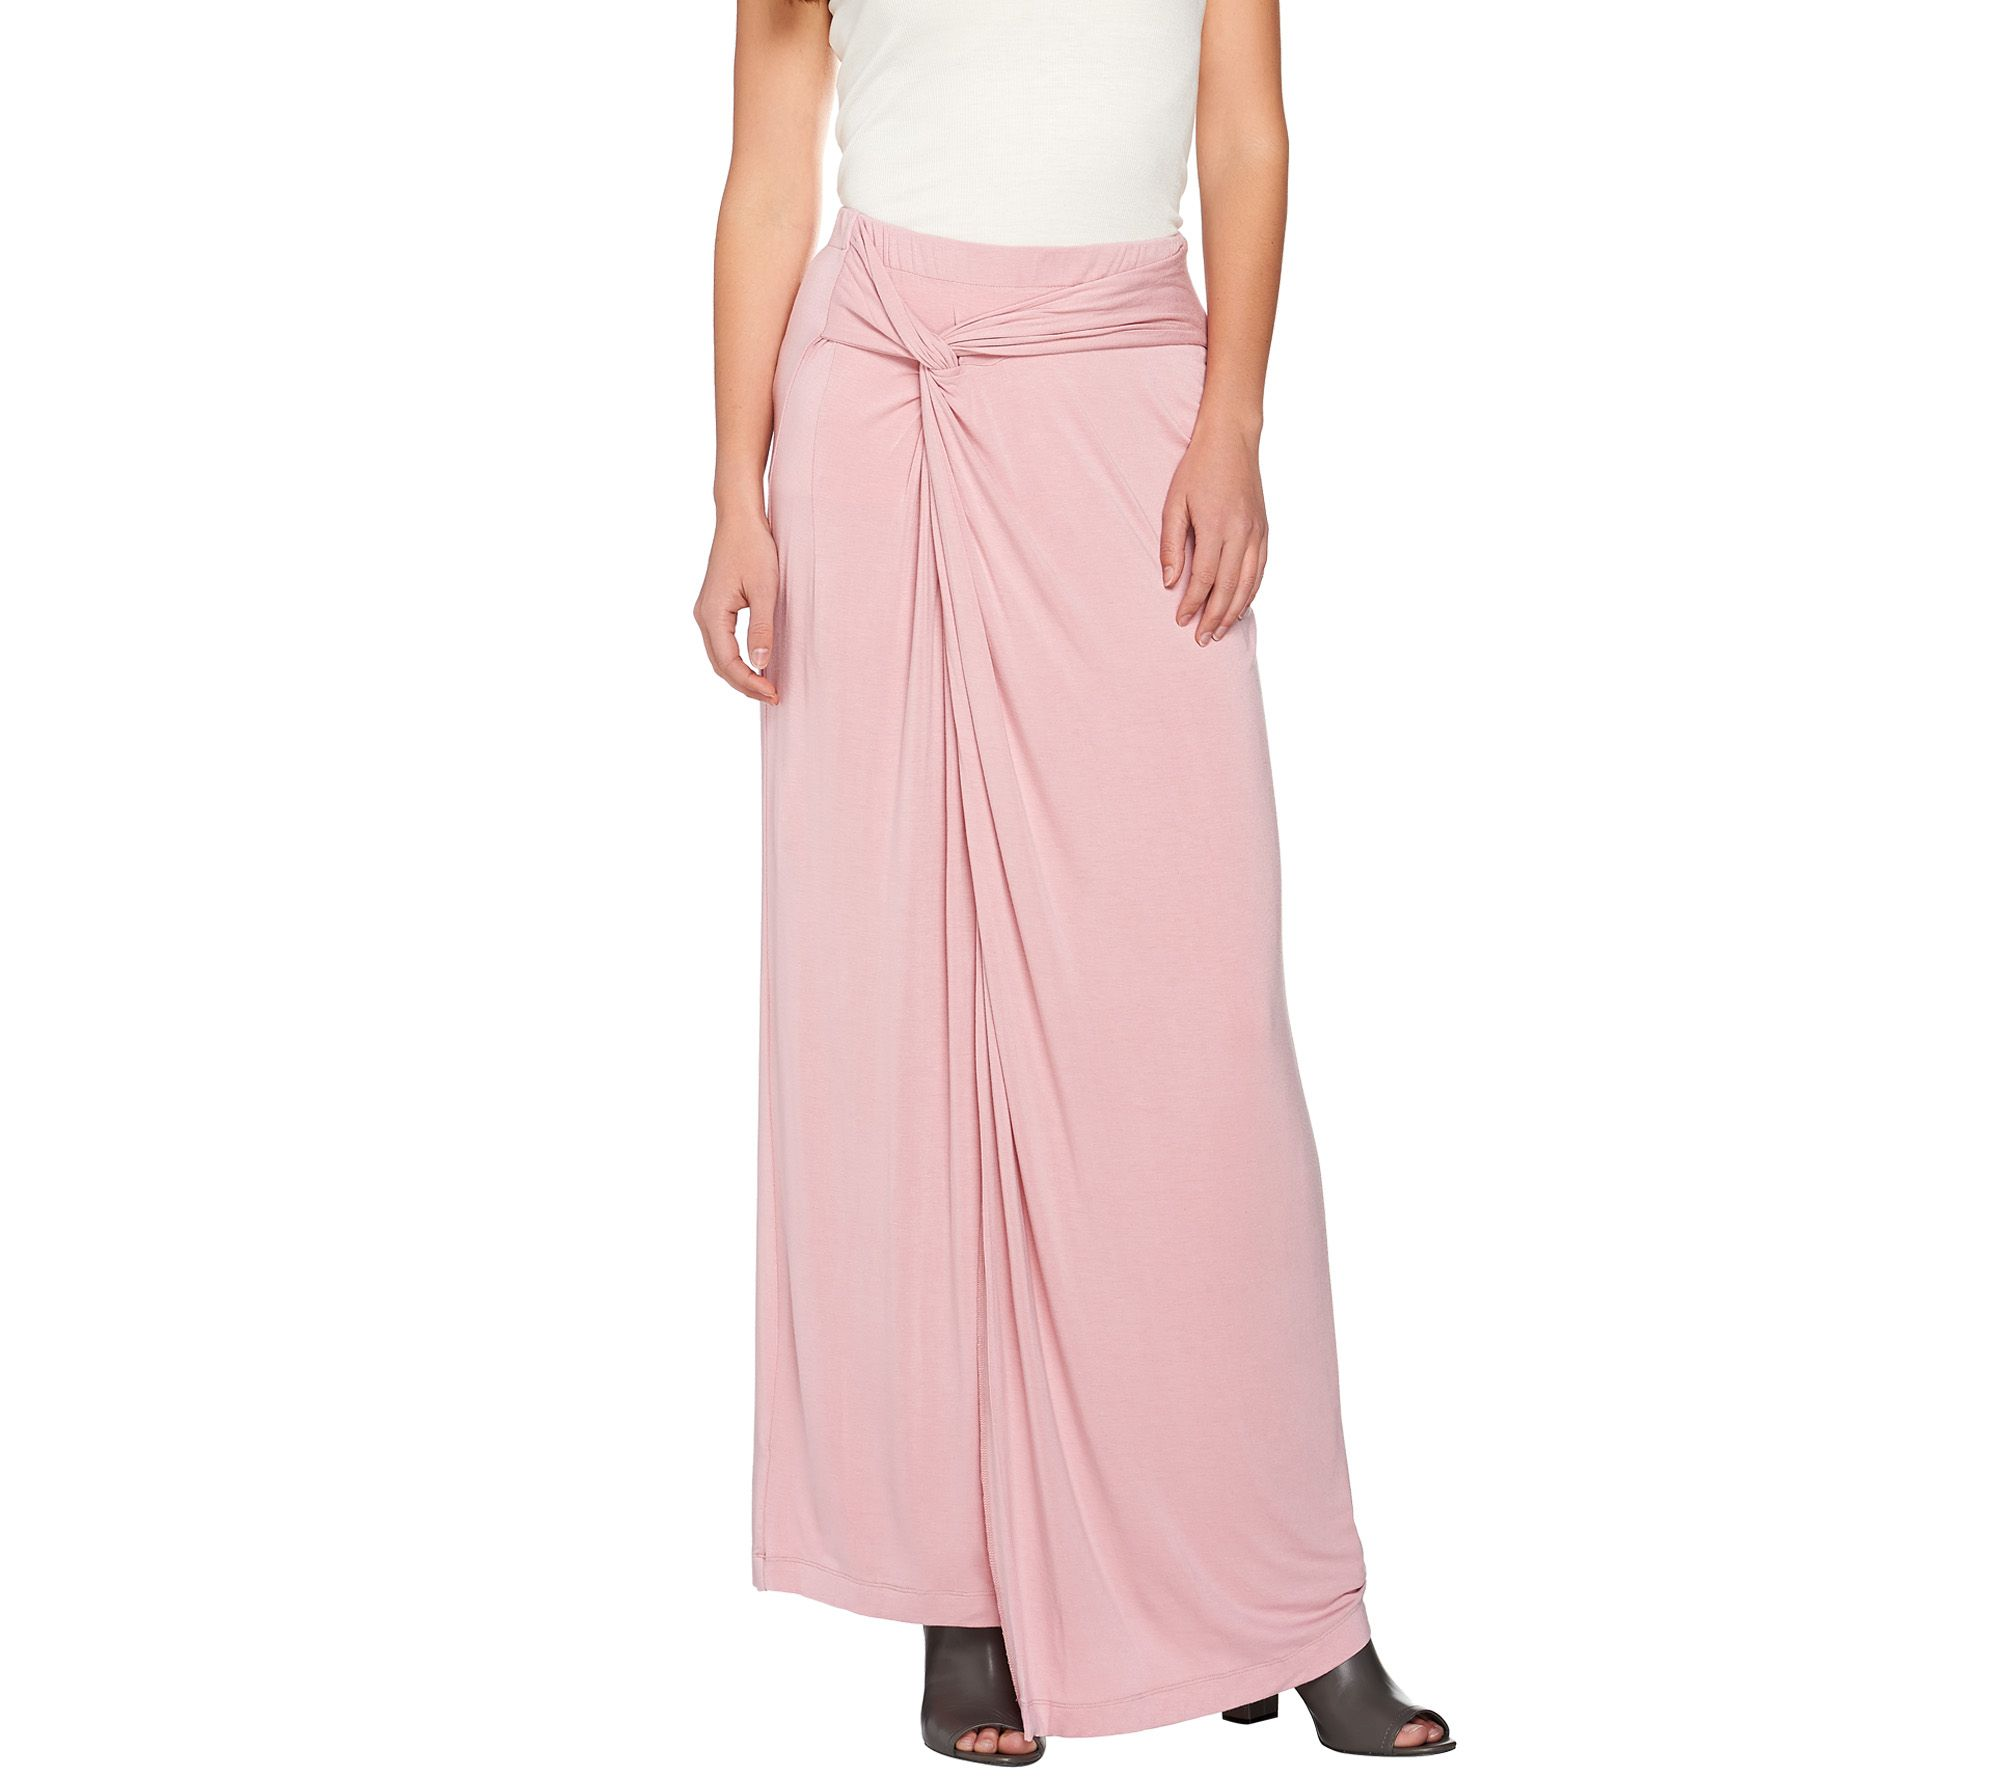 h by regular knit maxi skirt with side knot detail